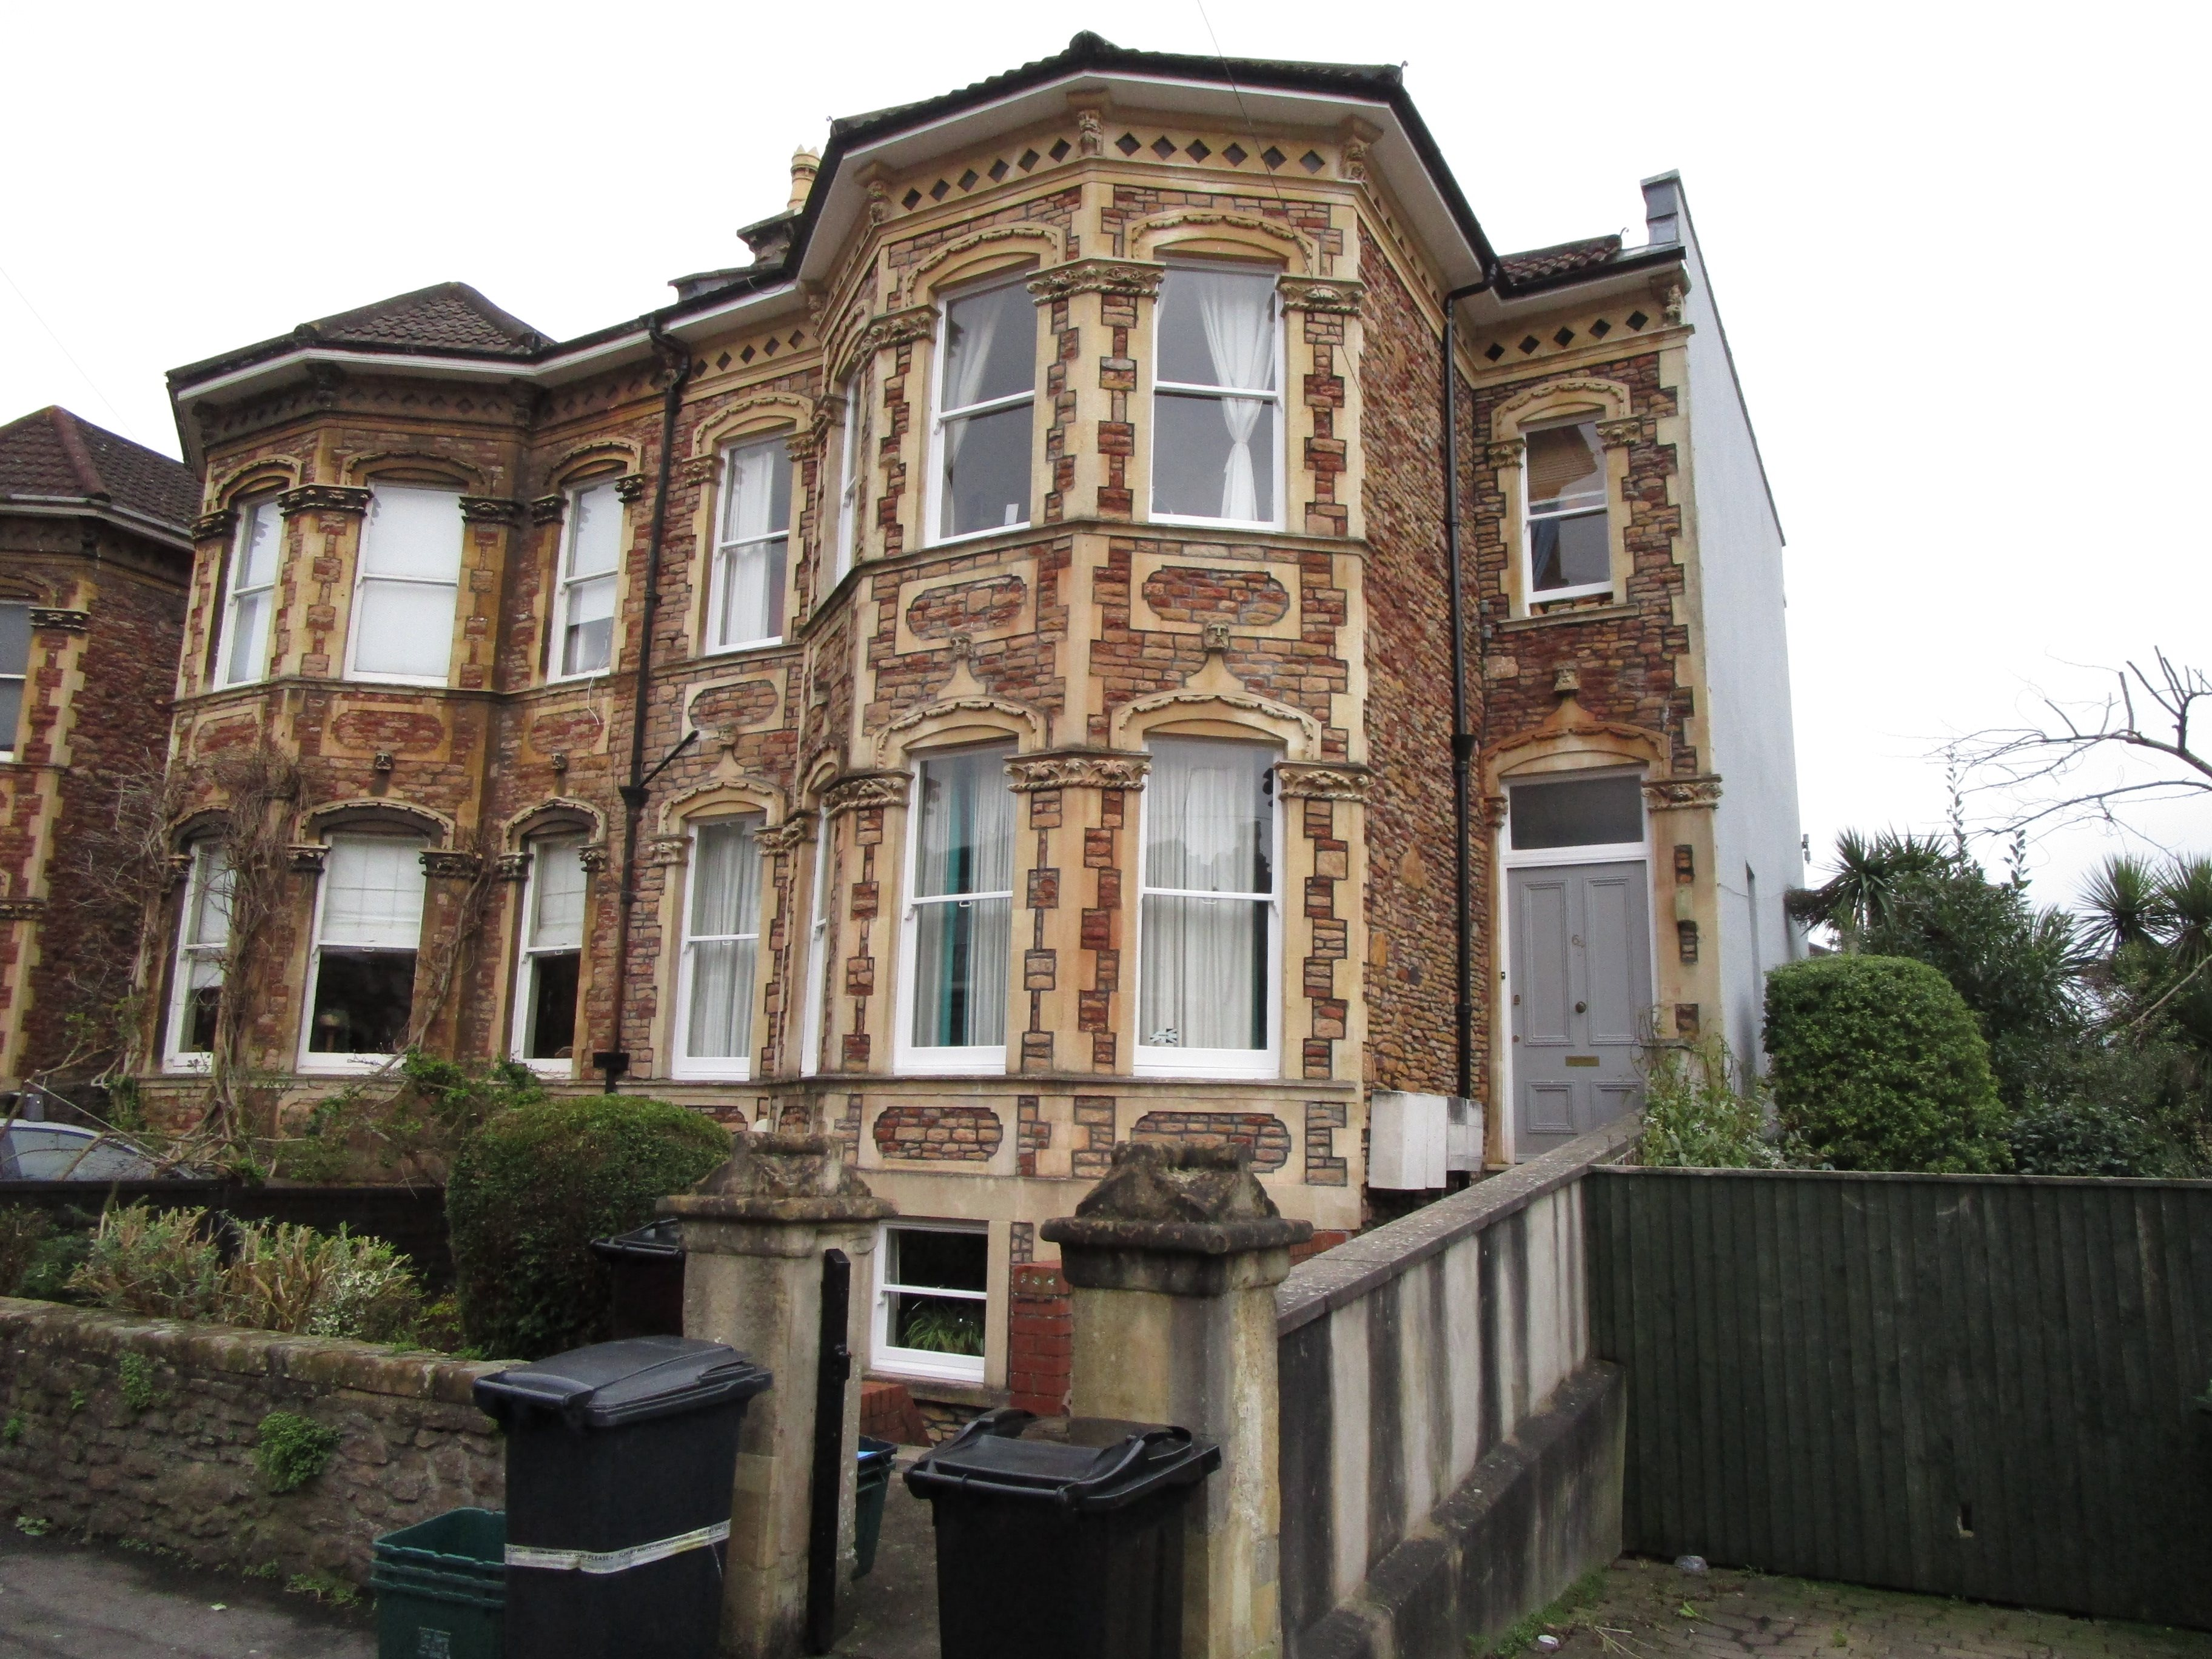 1 bed flat to rent in Redland, BS6